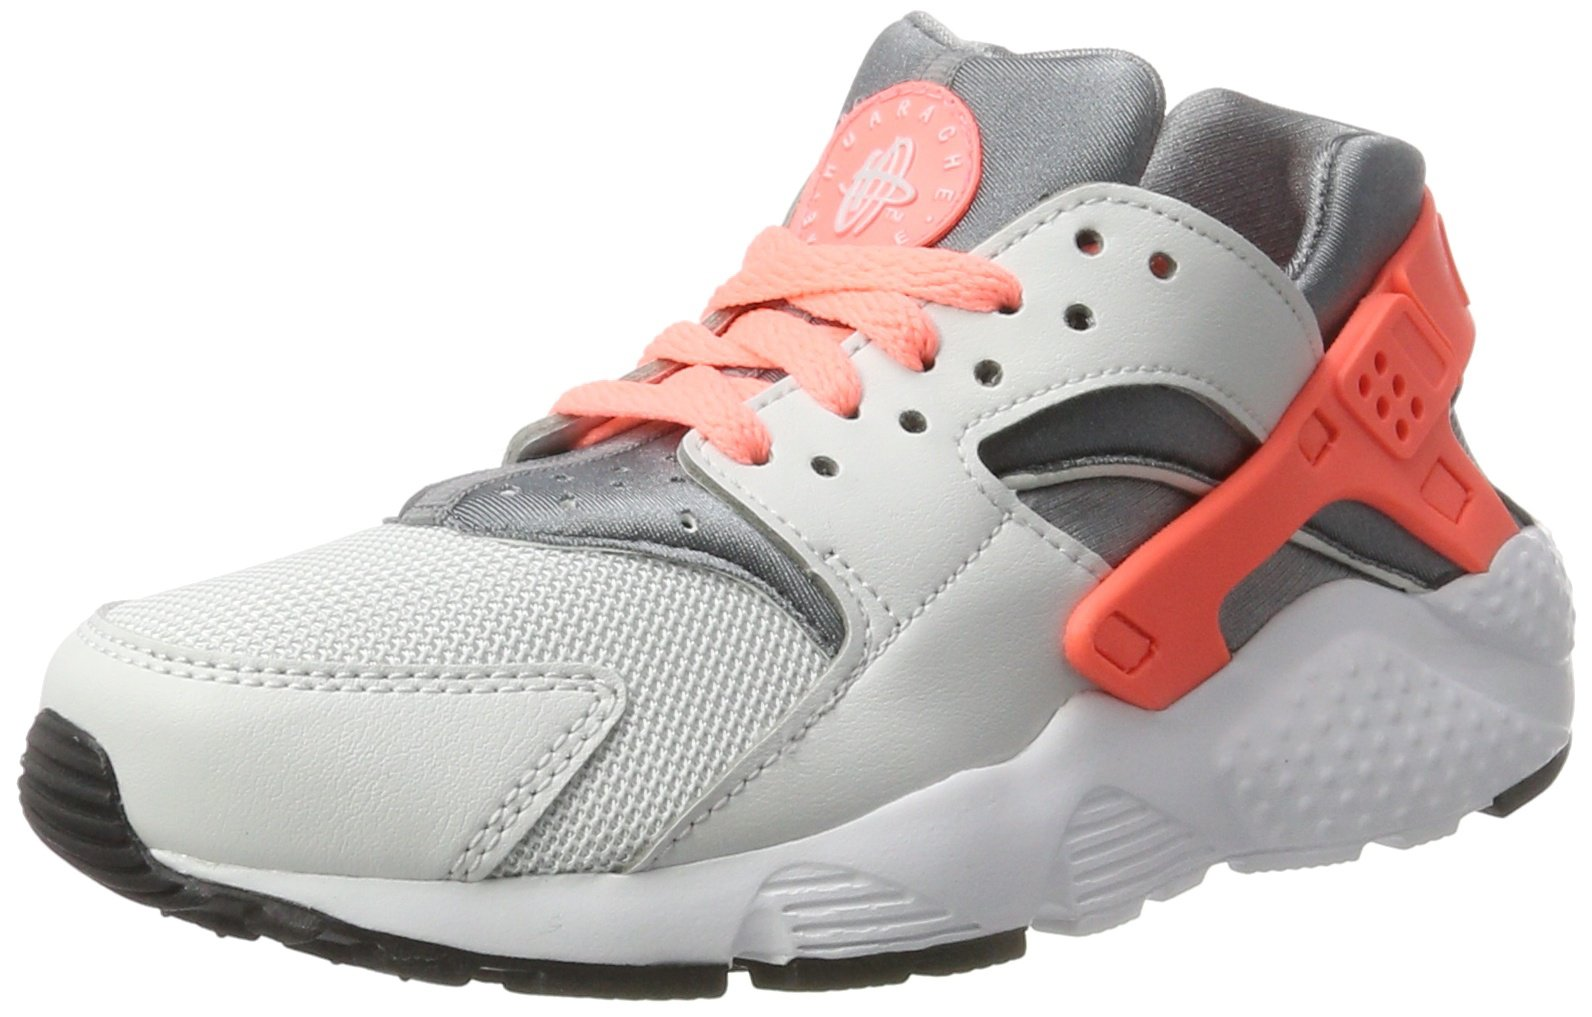 Nike Children and Boys Huarache Run Gs Sneakers, Multicolor (Pure Platinum/Lava Glow-Cool Grey-White), 4 UK